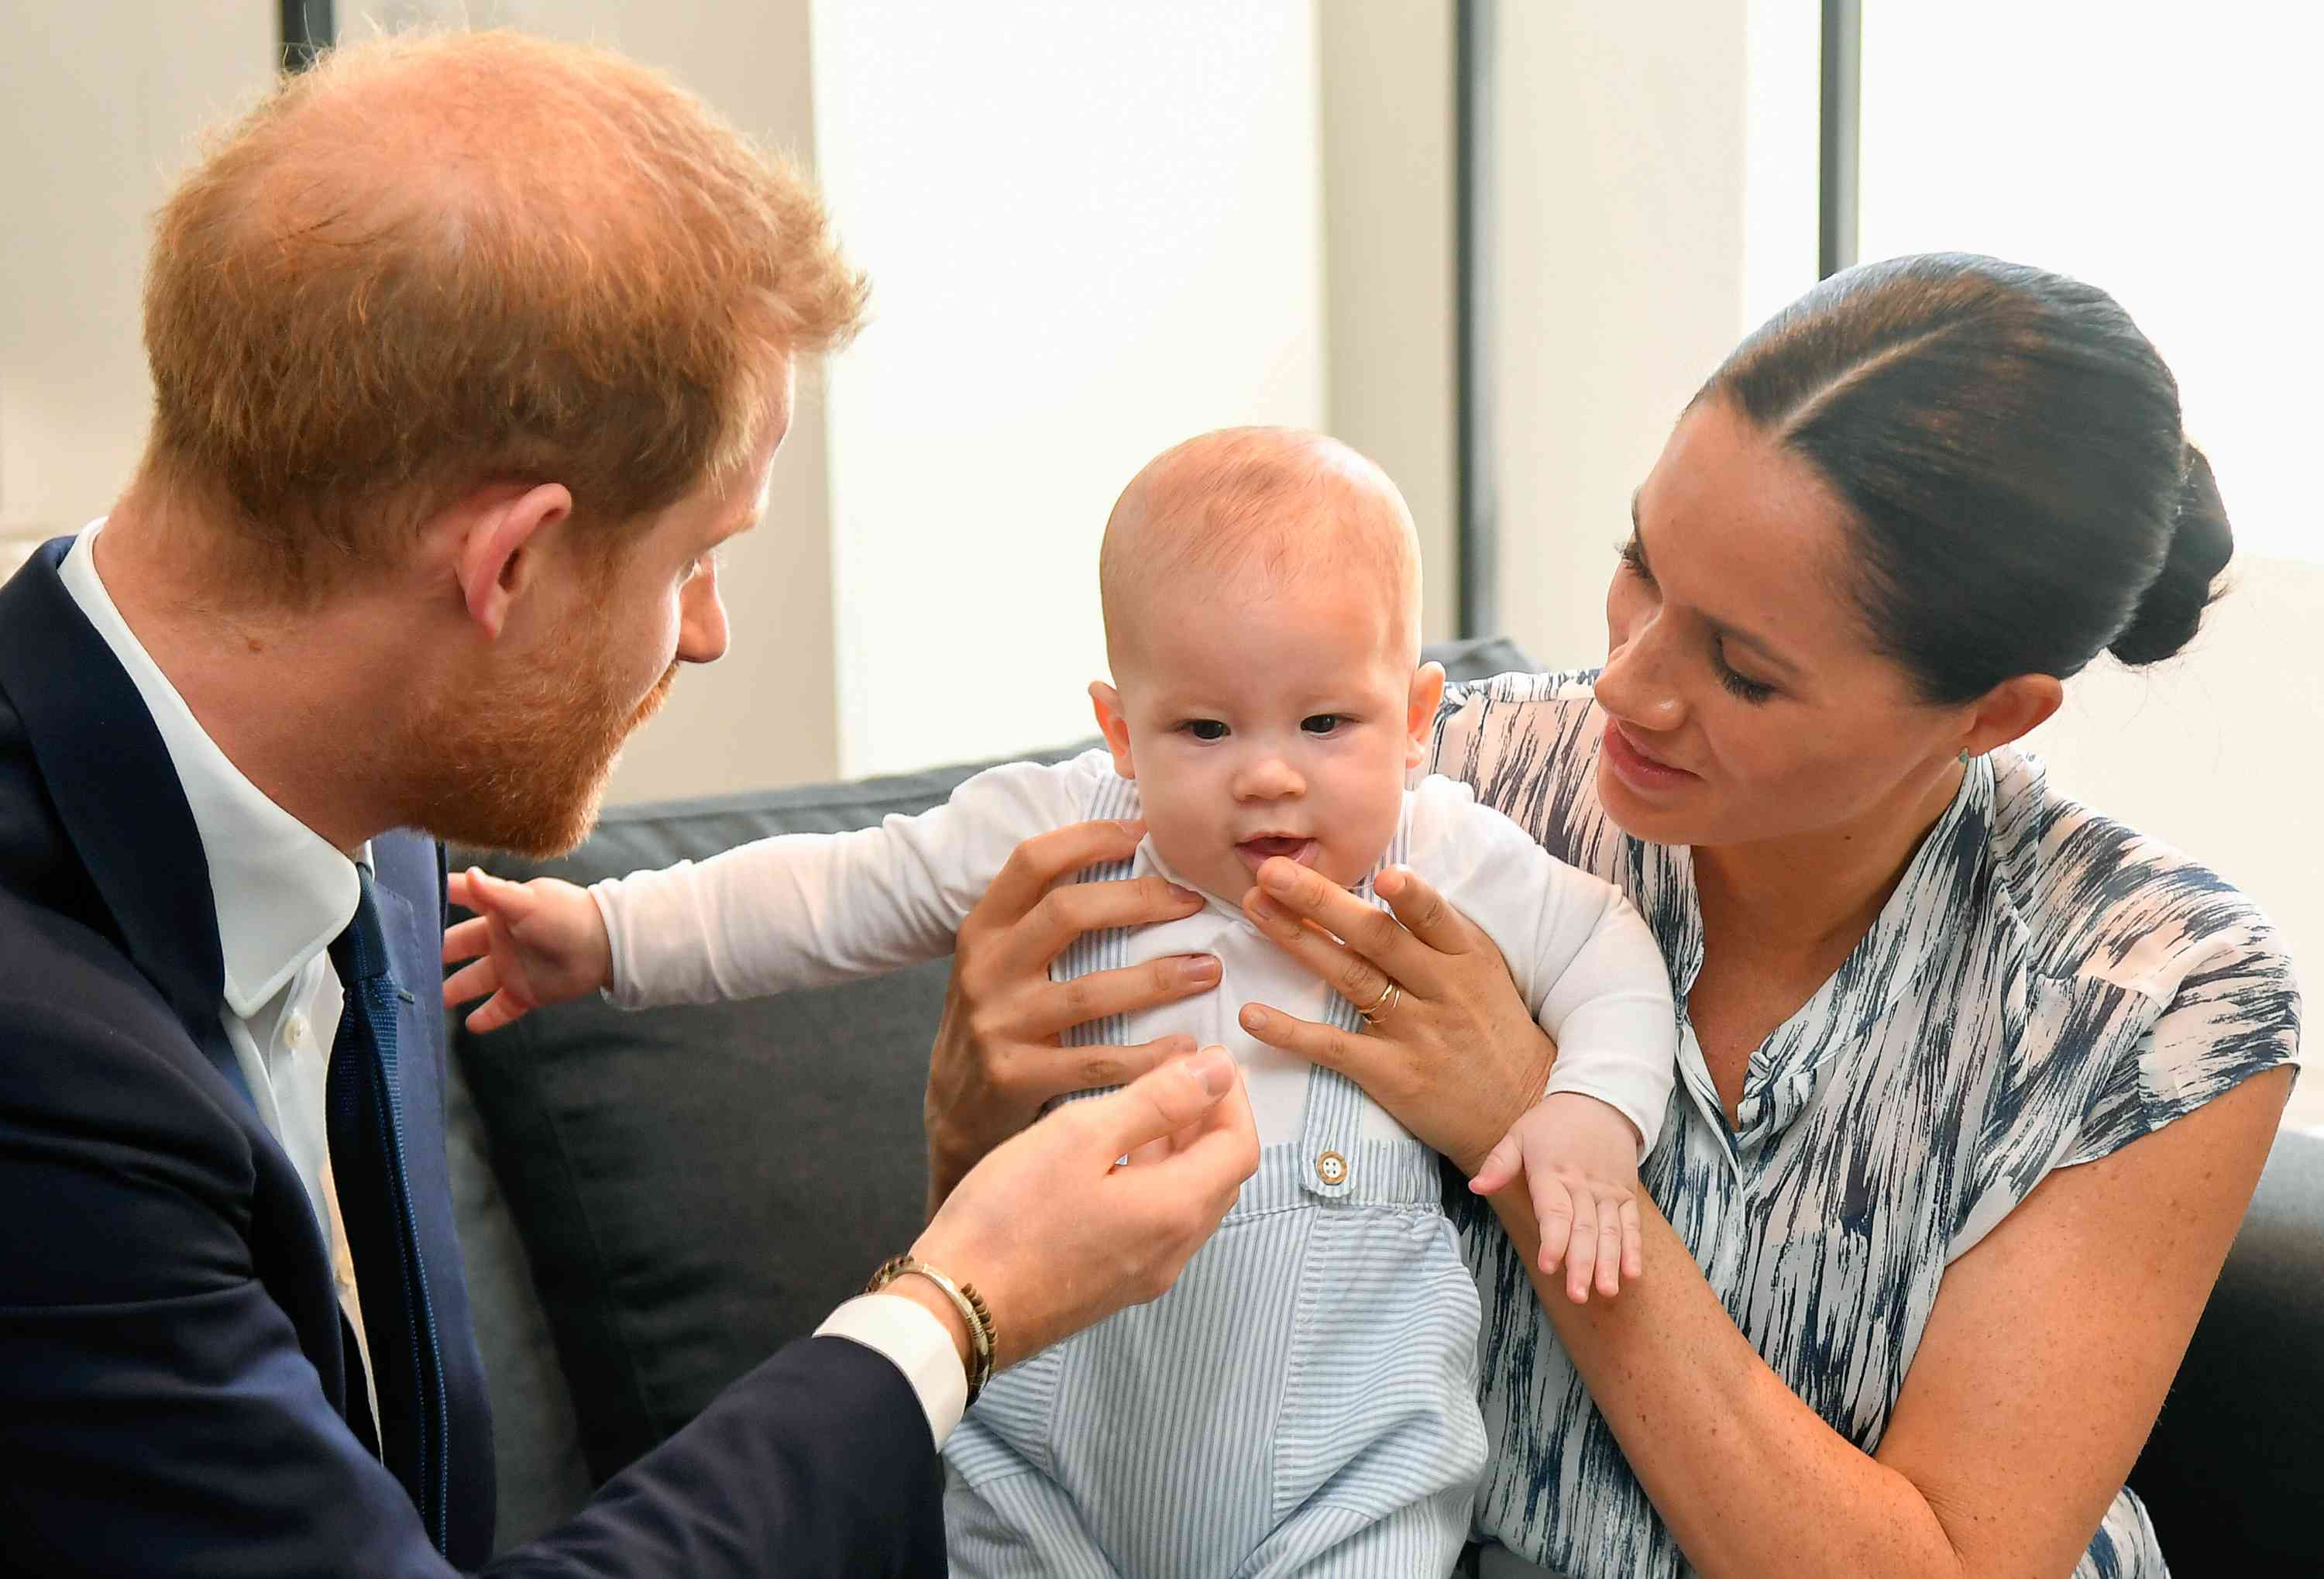 Prince harry and meghan markle holding baby